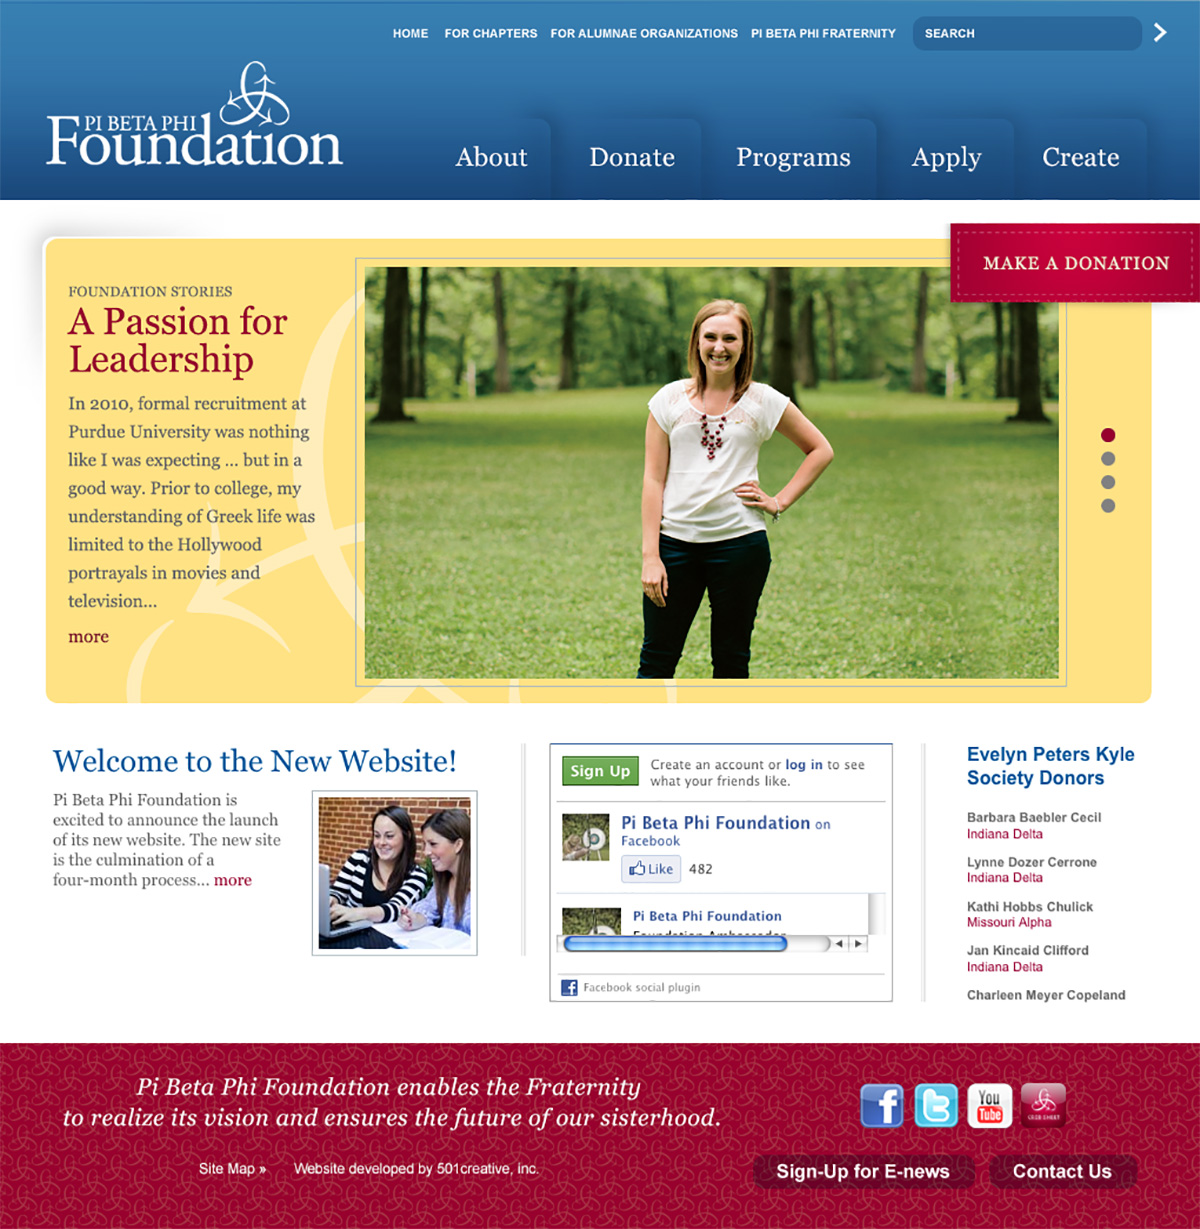 pi beta phi foundation website home page